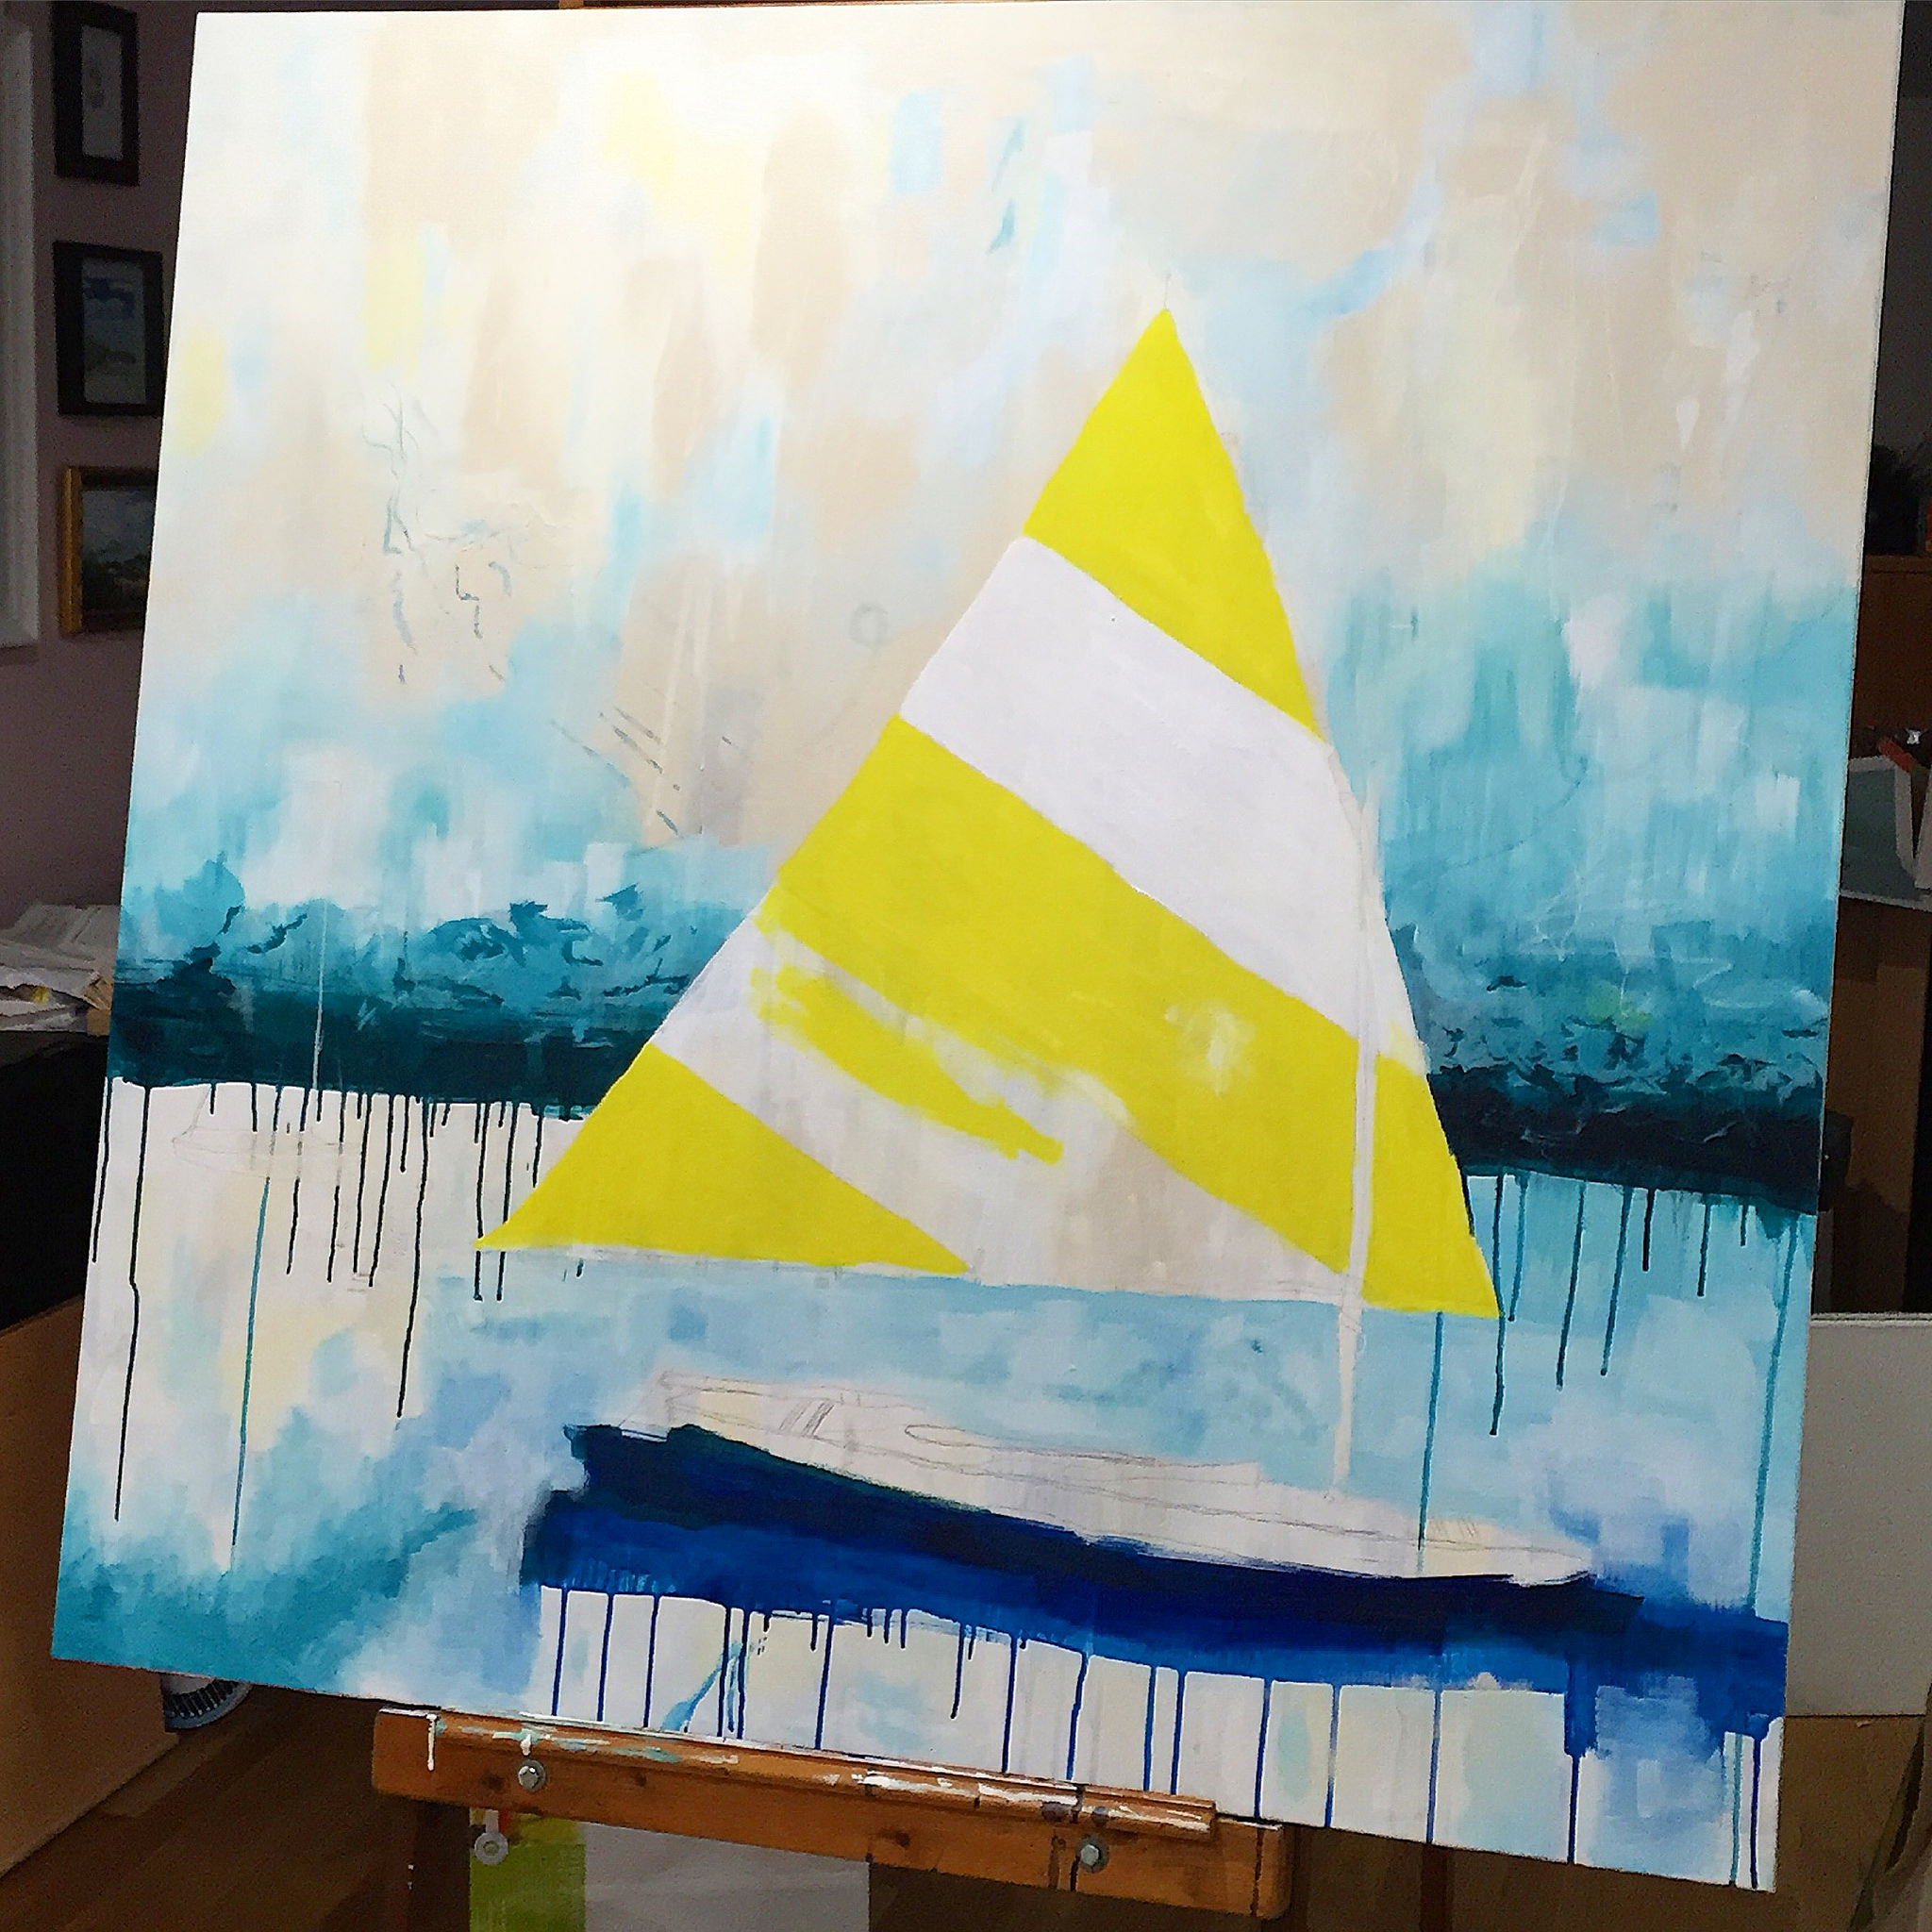 Maine boat painting process by Megan Carty